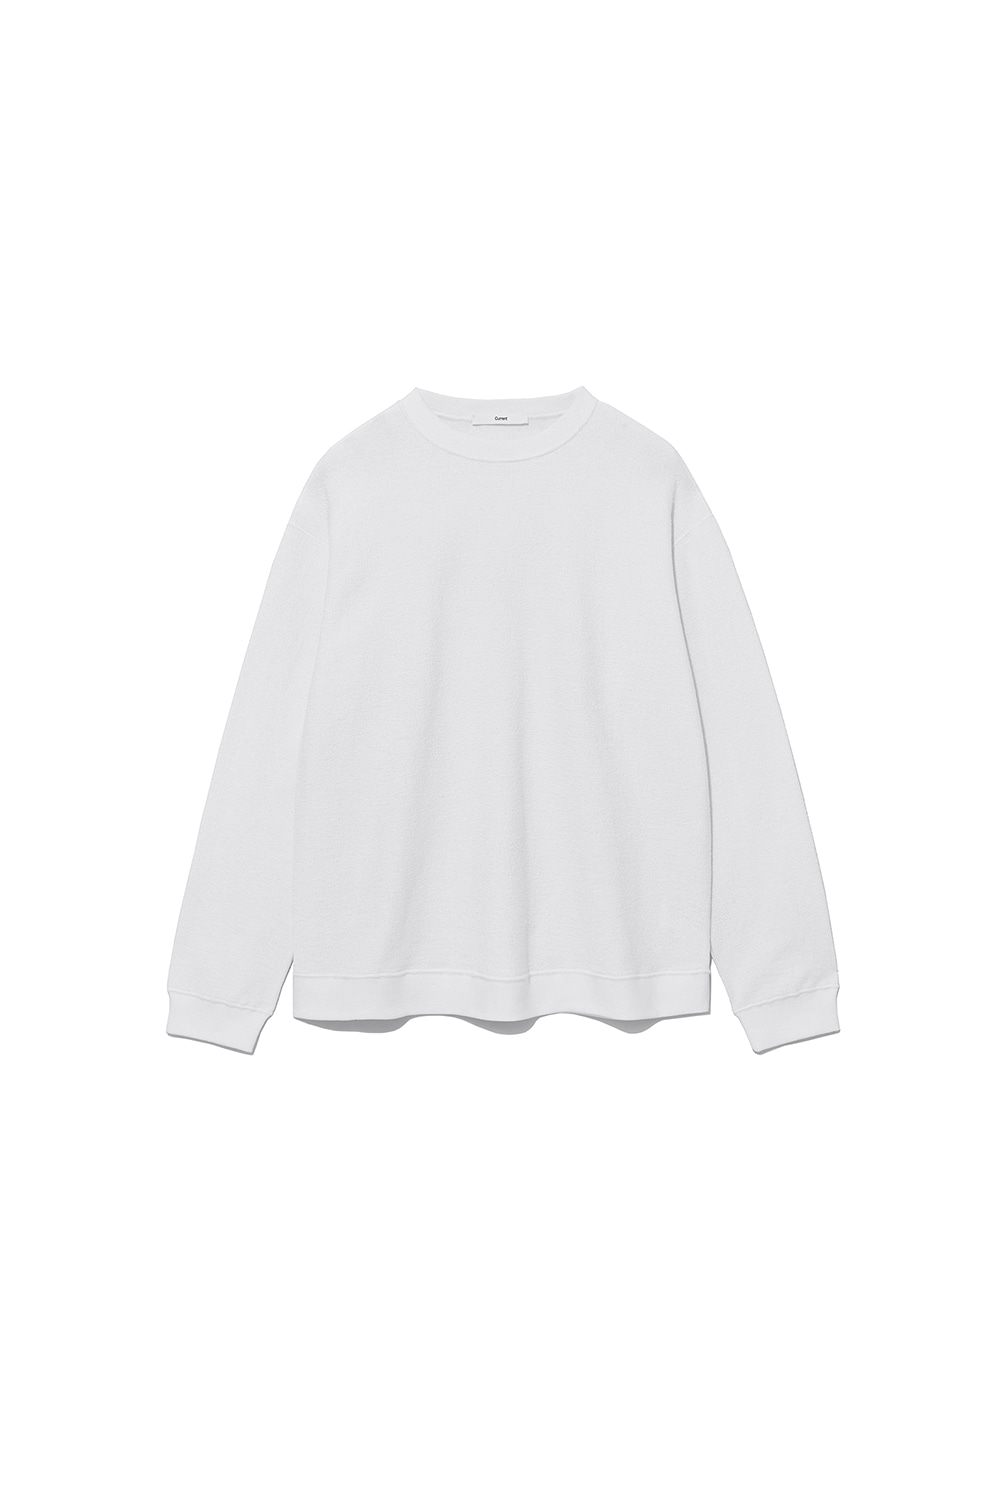 REVERSE SWEATSHIRT MAN [WHITE]